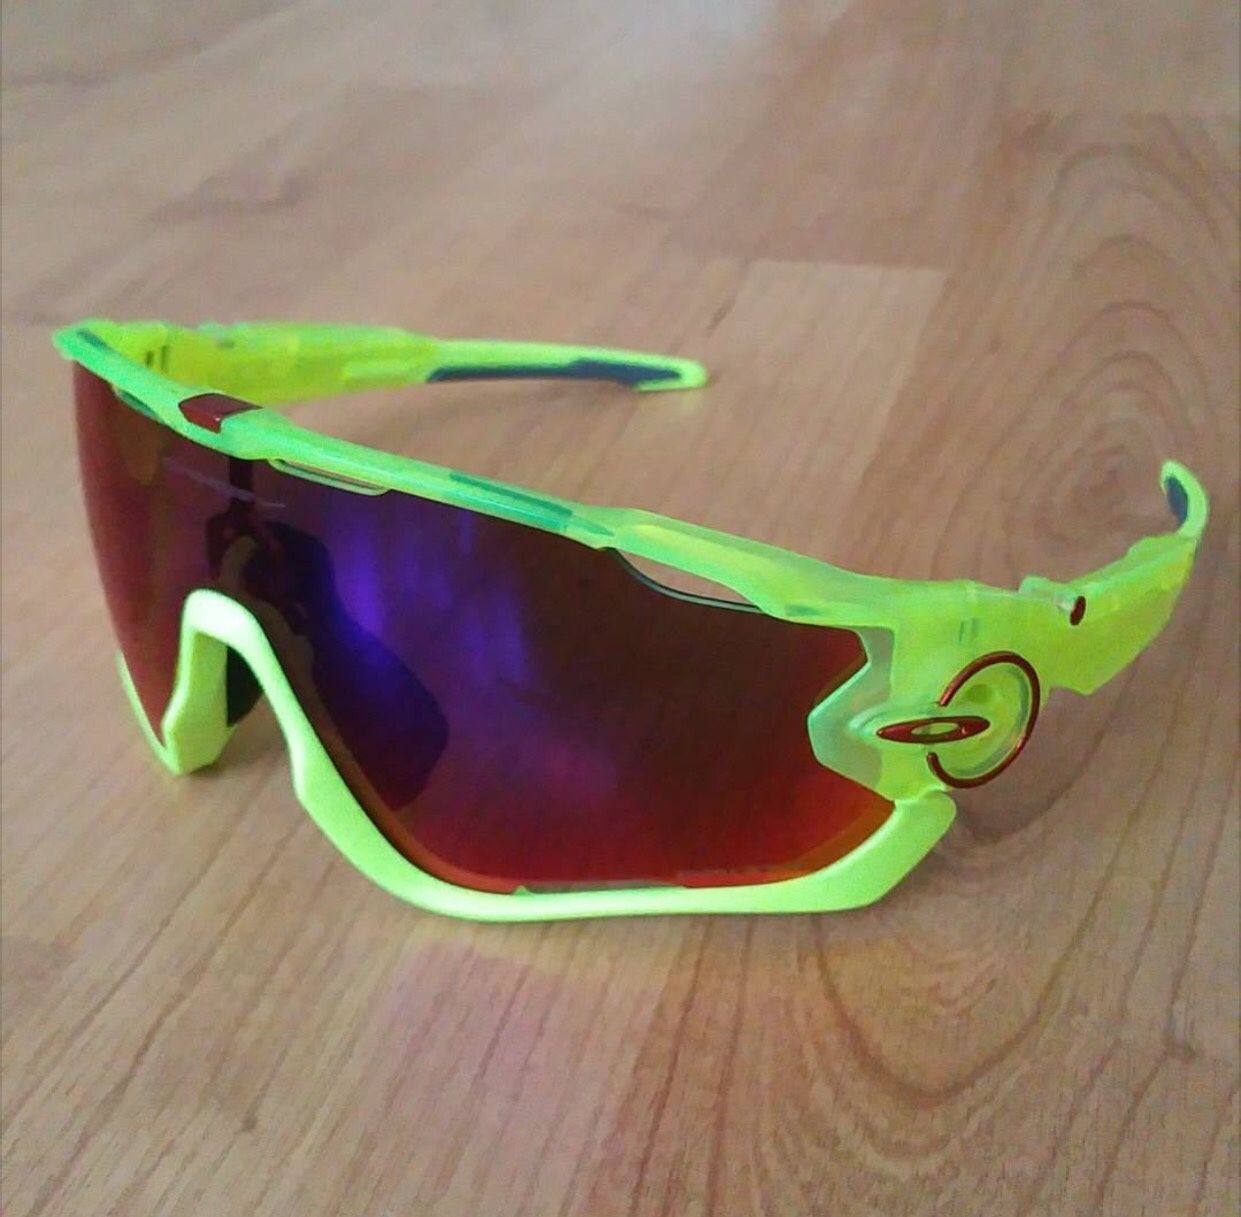 How to Dismantle / Take Apart an Oakley Jaw Breaker? - 7651e84a45059b7aab411f9425fc4910.jpg